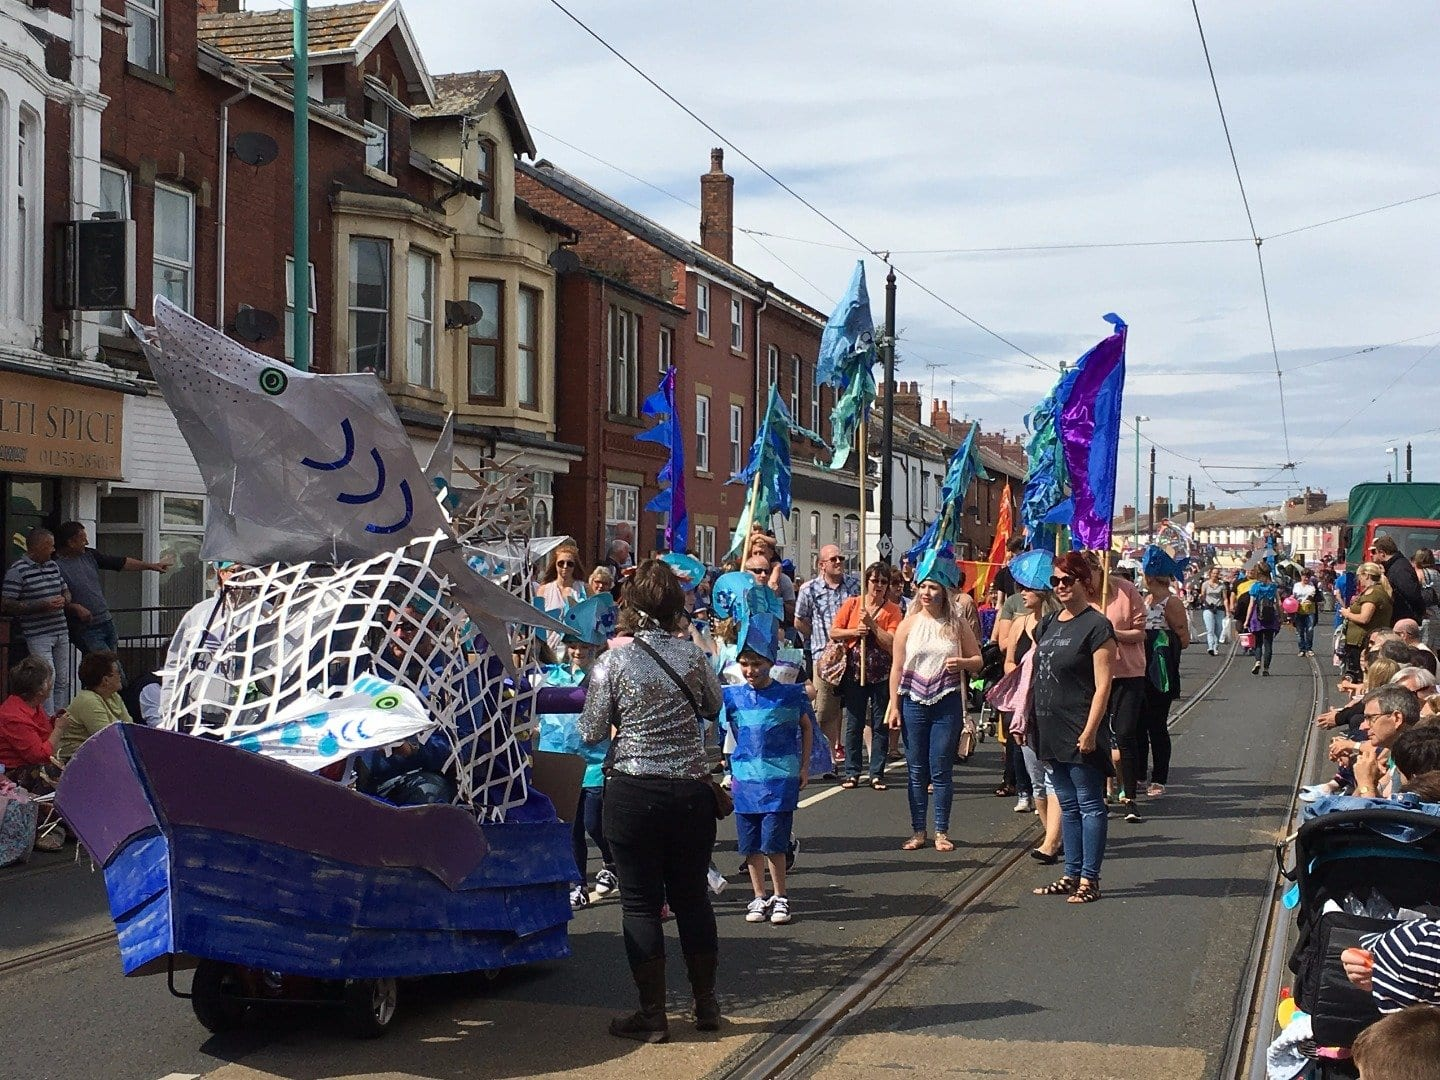 SpareParts parade, find out about Fleetwood Tram Sunday